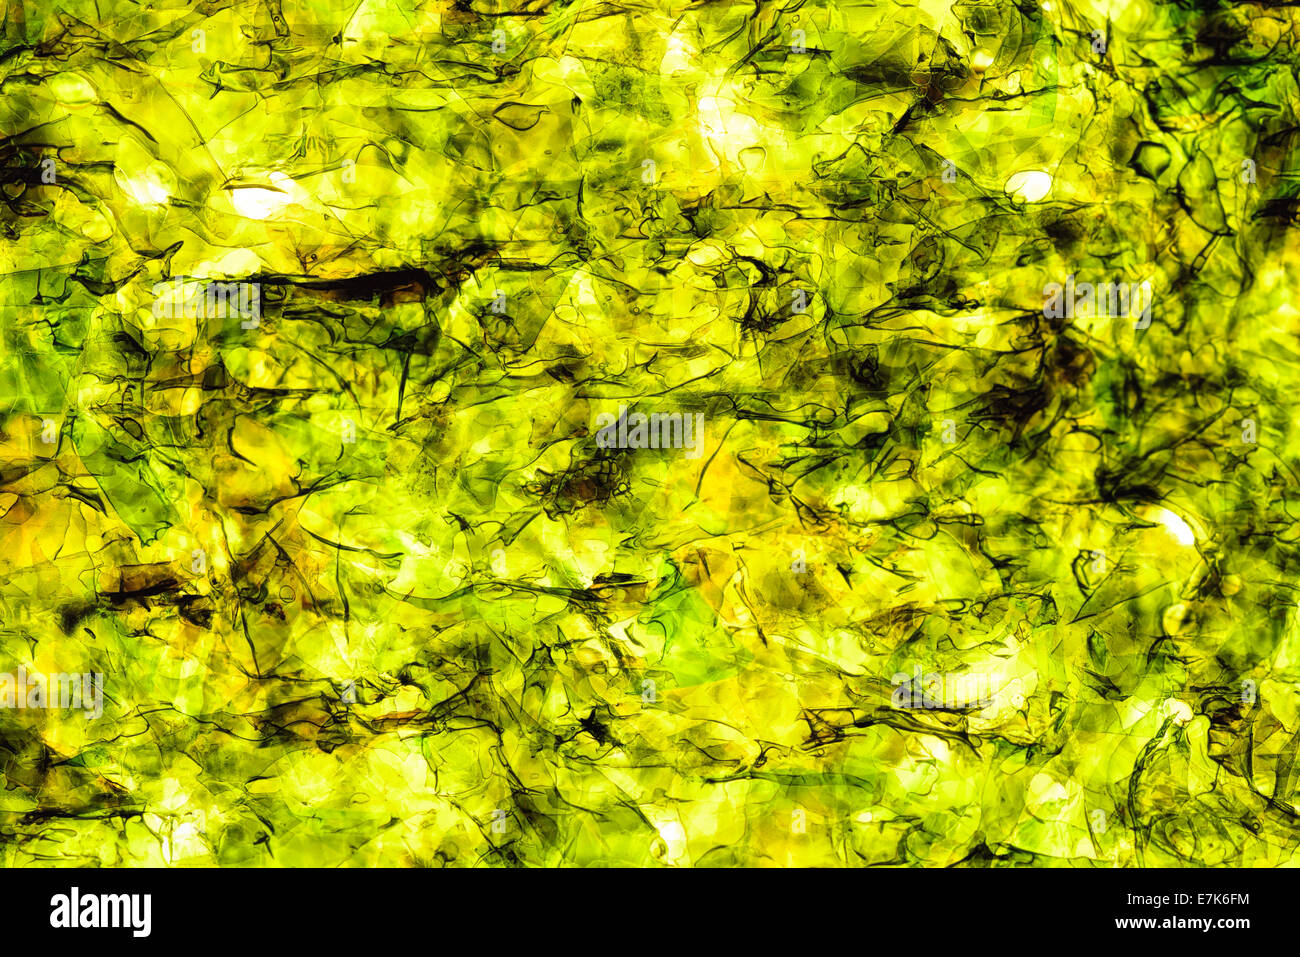 Close-up of a sheet of edible dried roasted seaweed. - Stock Image